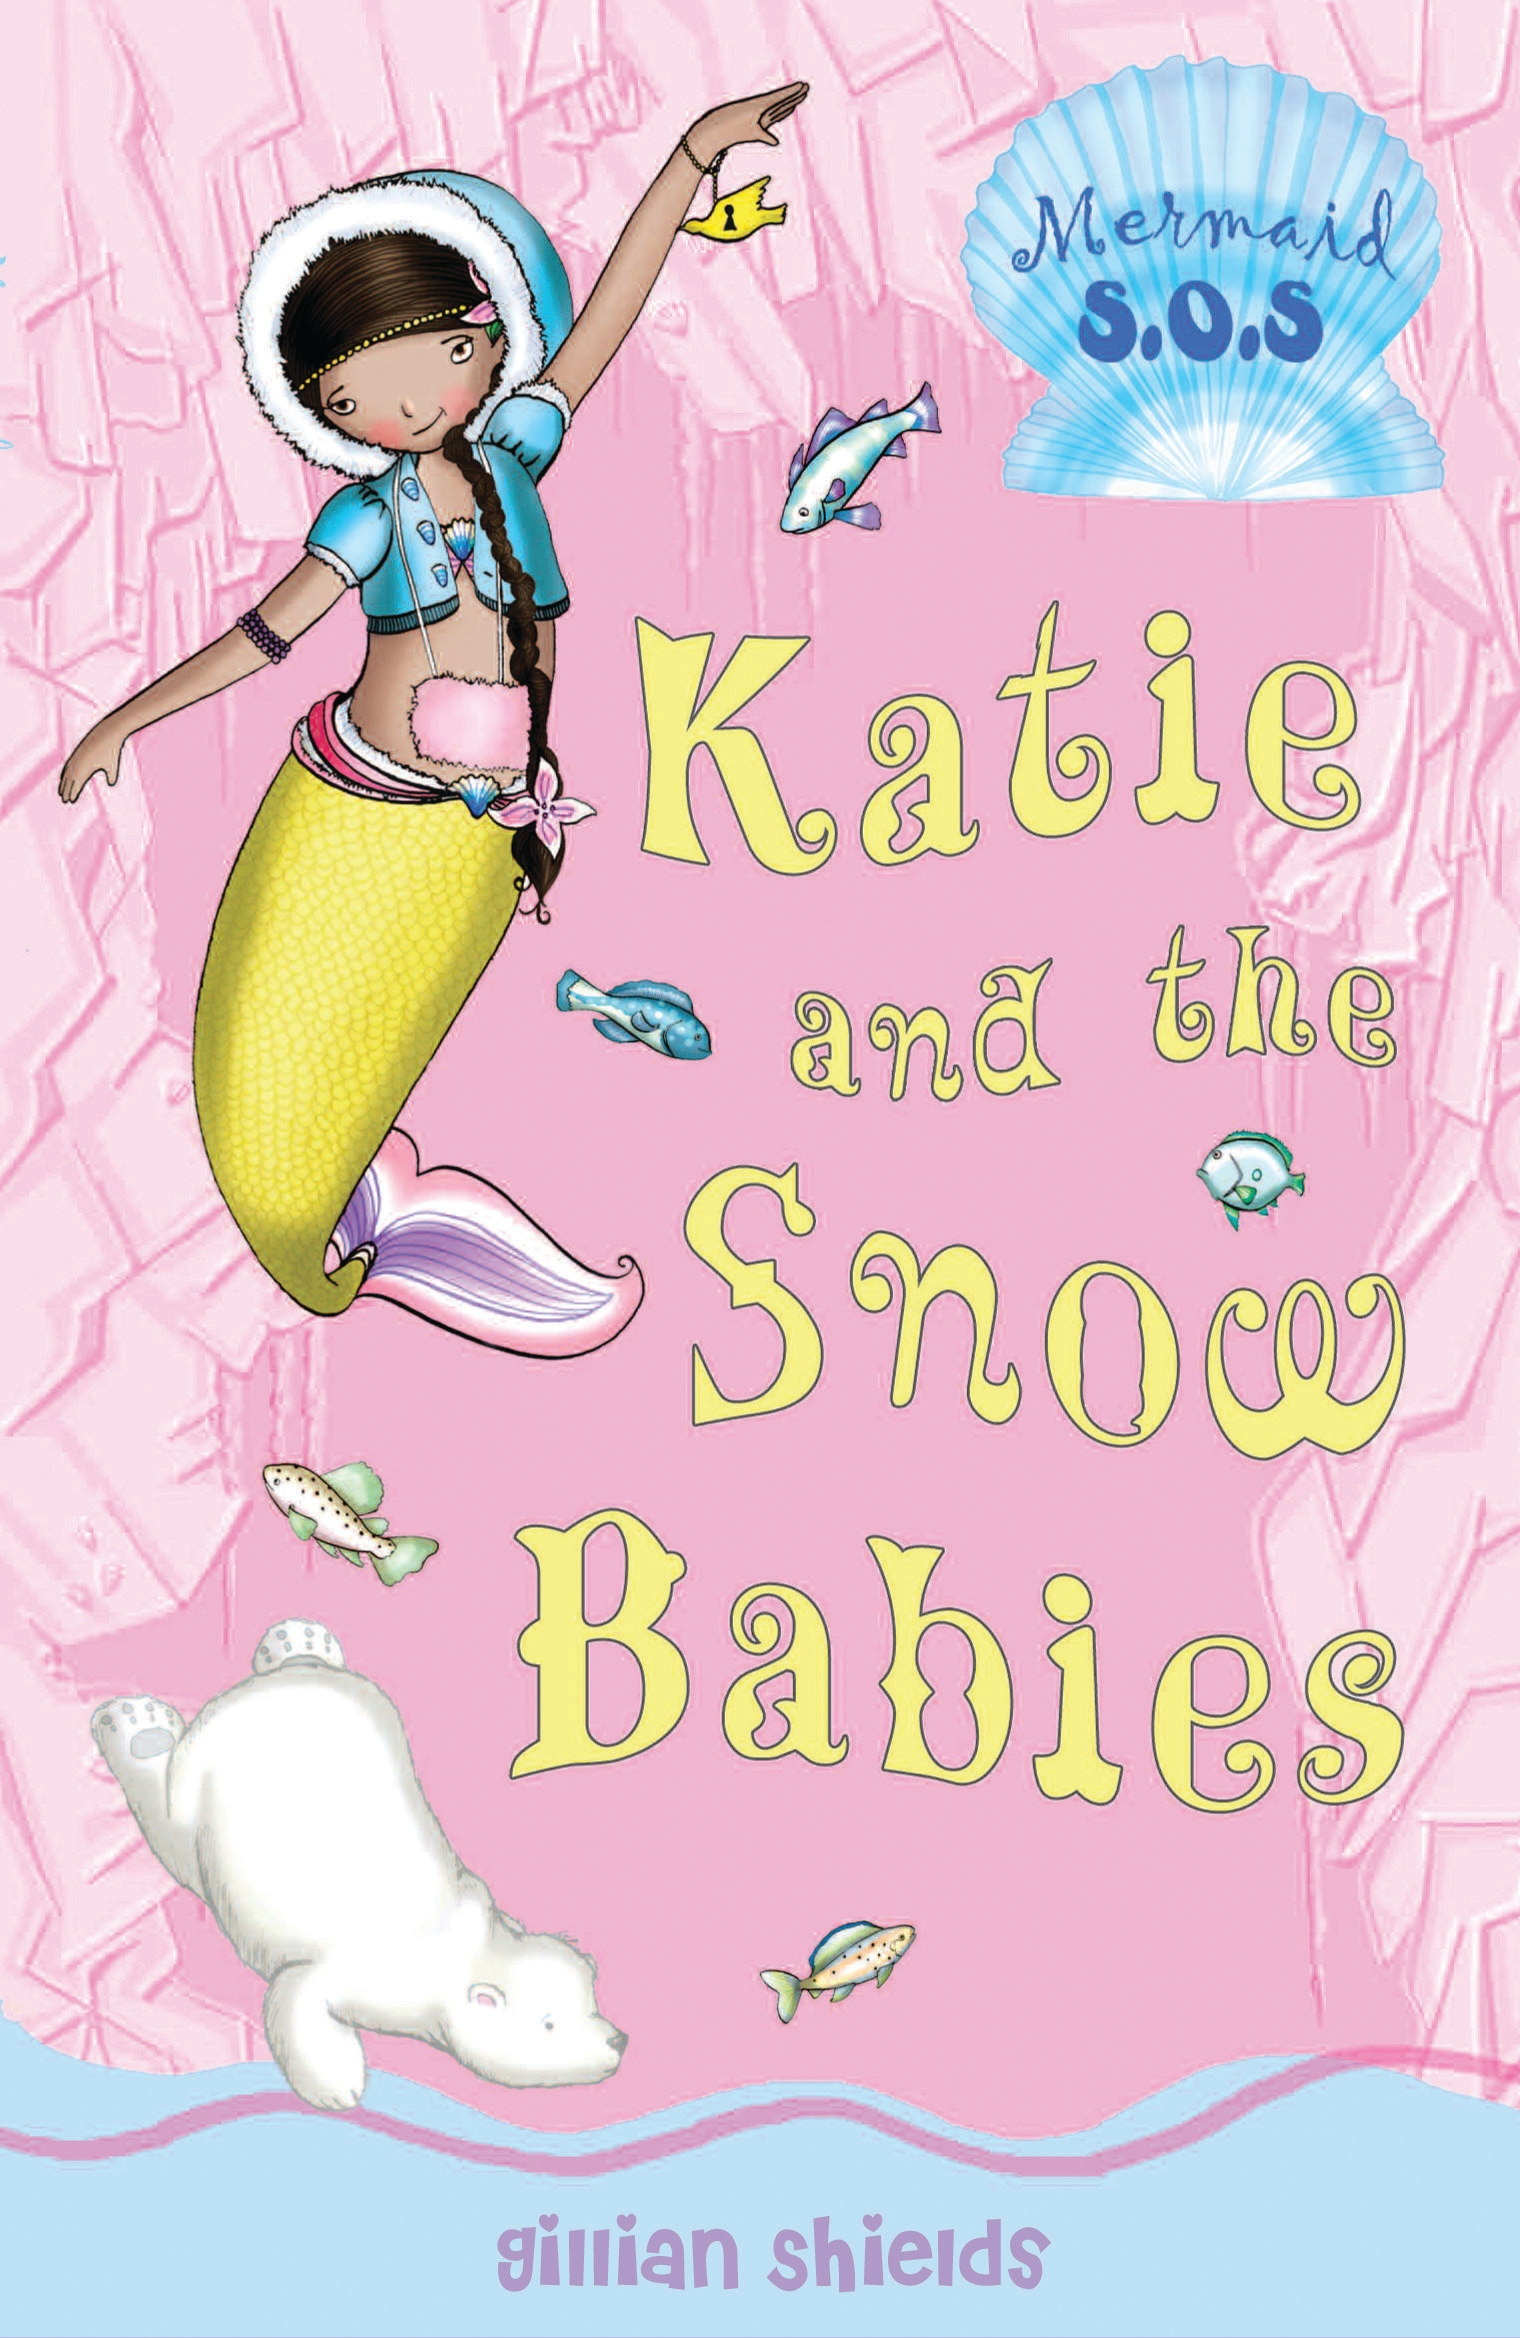 Katie and the Snow Babies: Mermaid S.O.S. #8